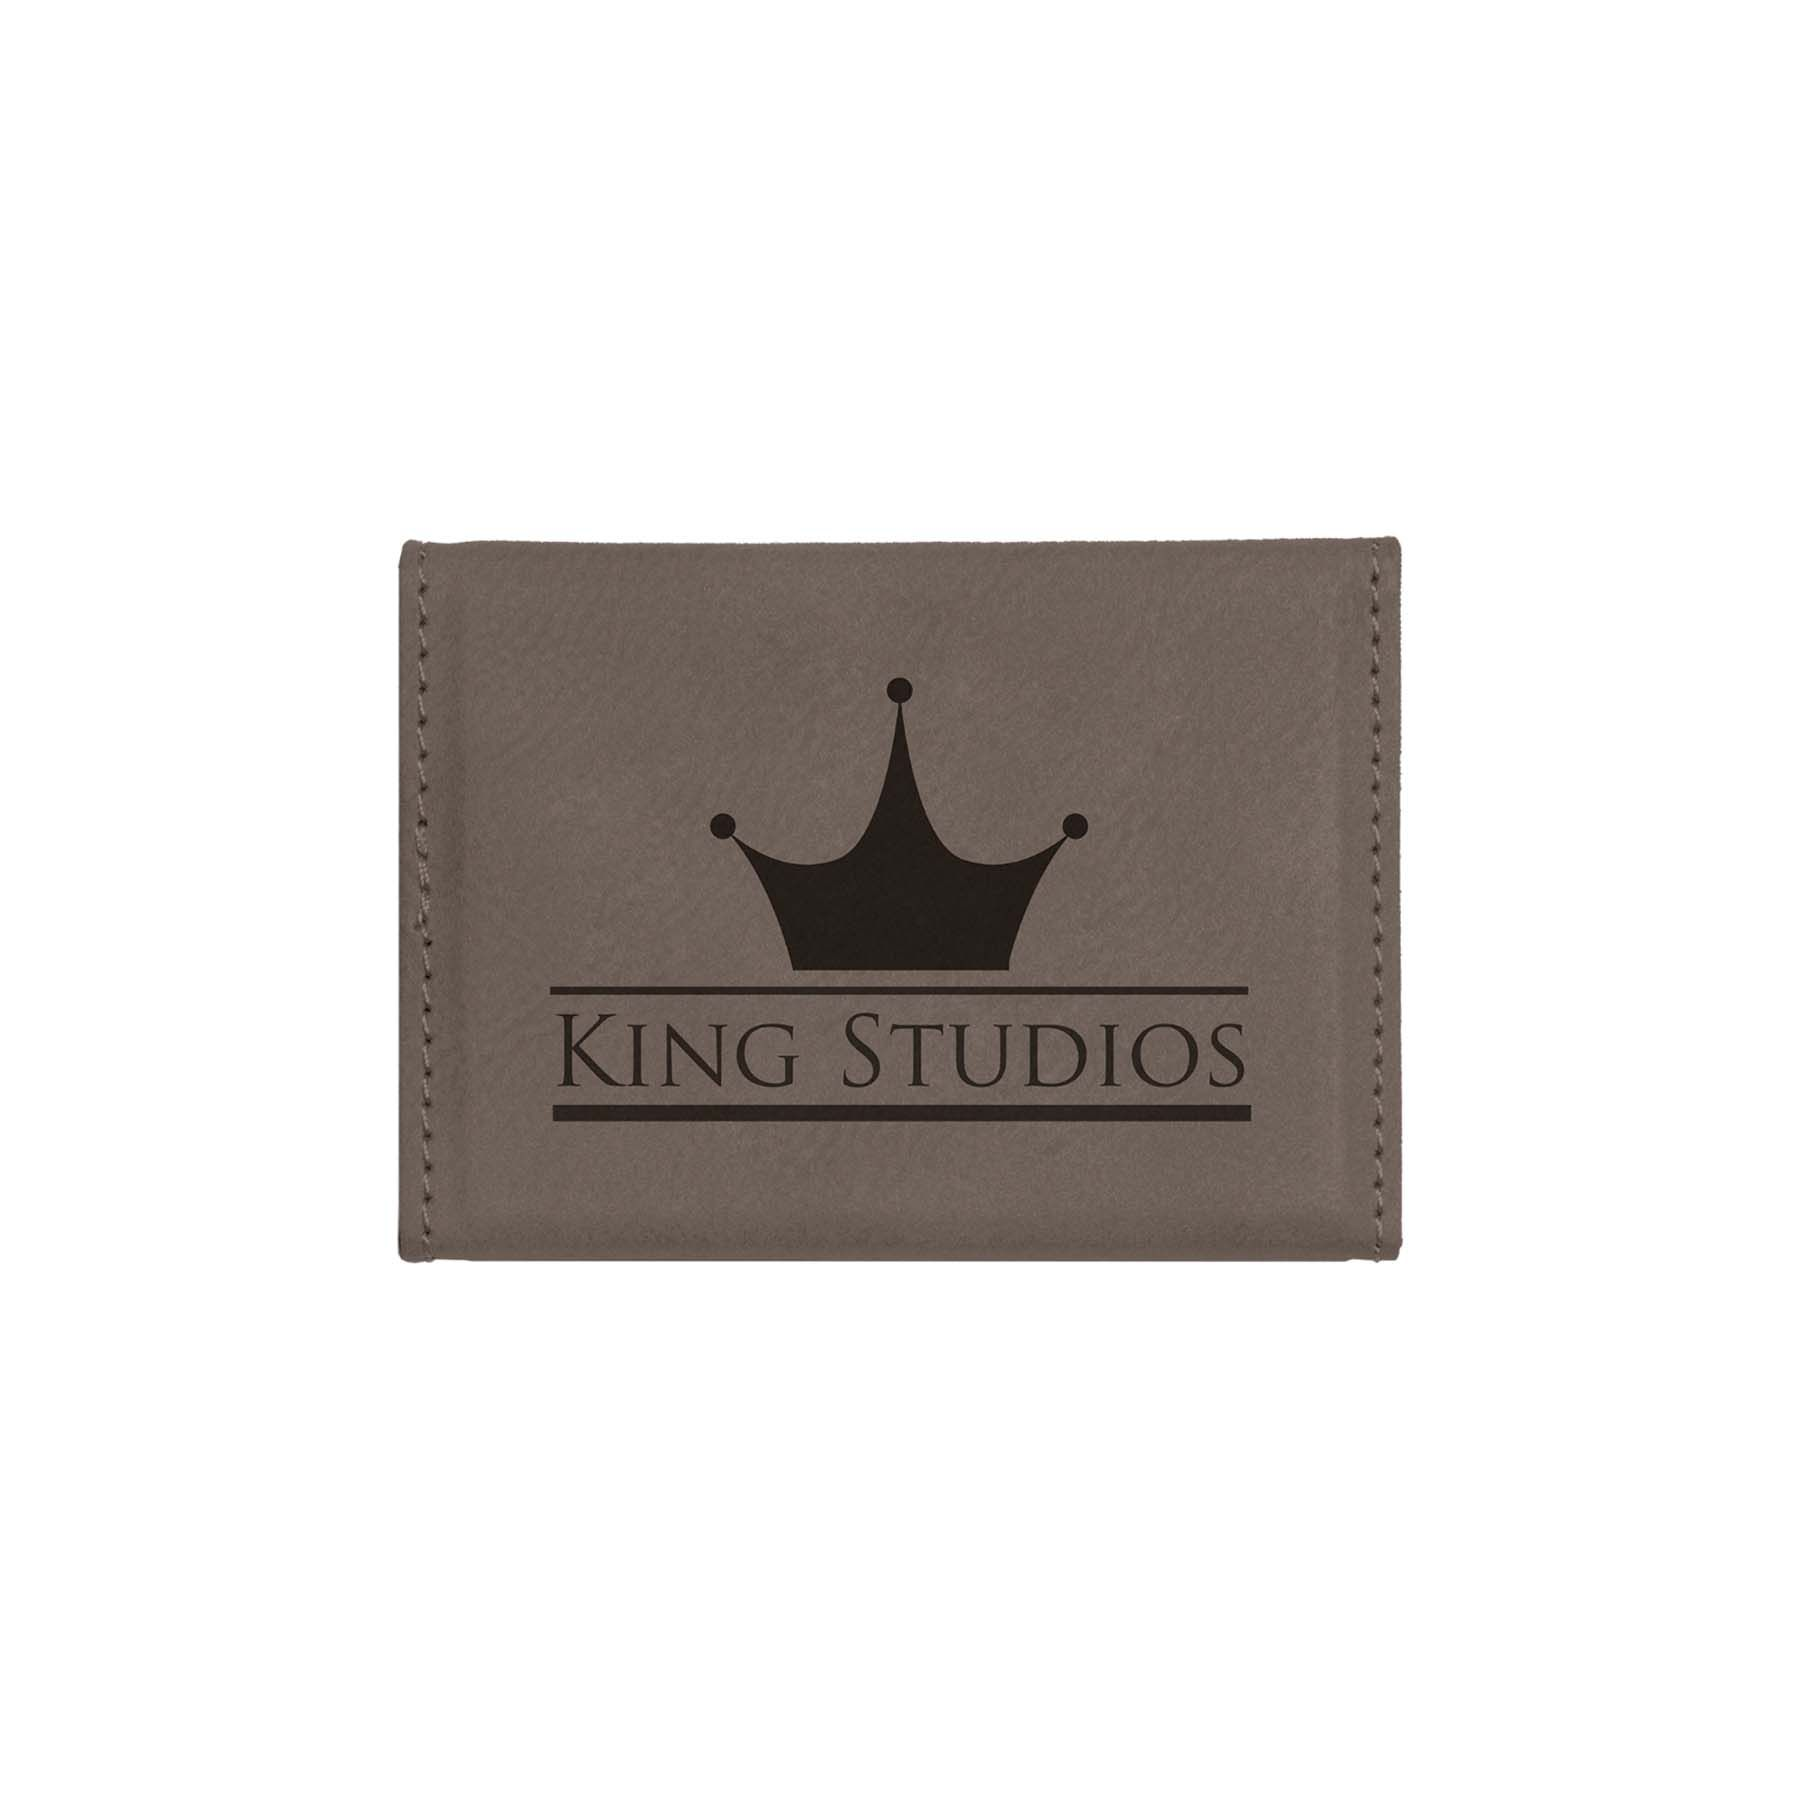 these classy engraved leatherette business card holders are great